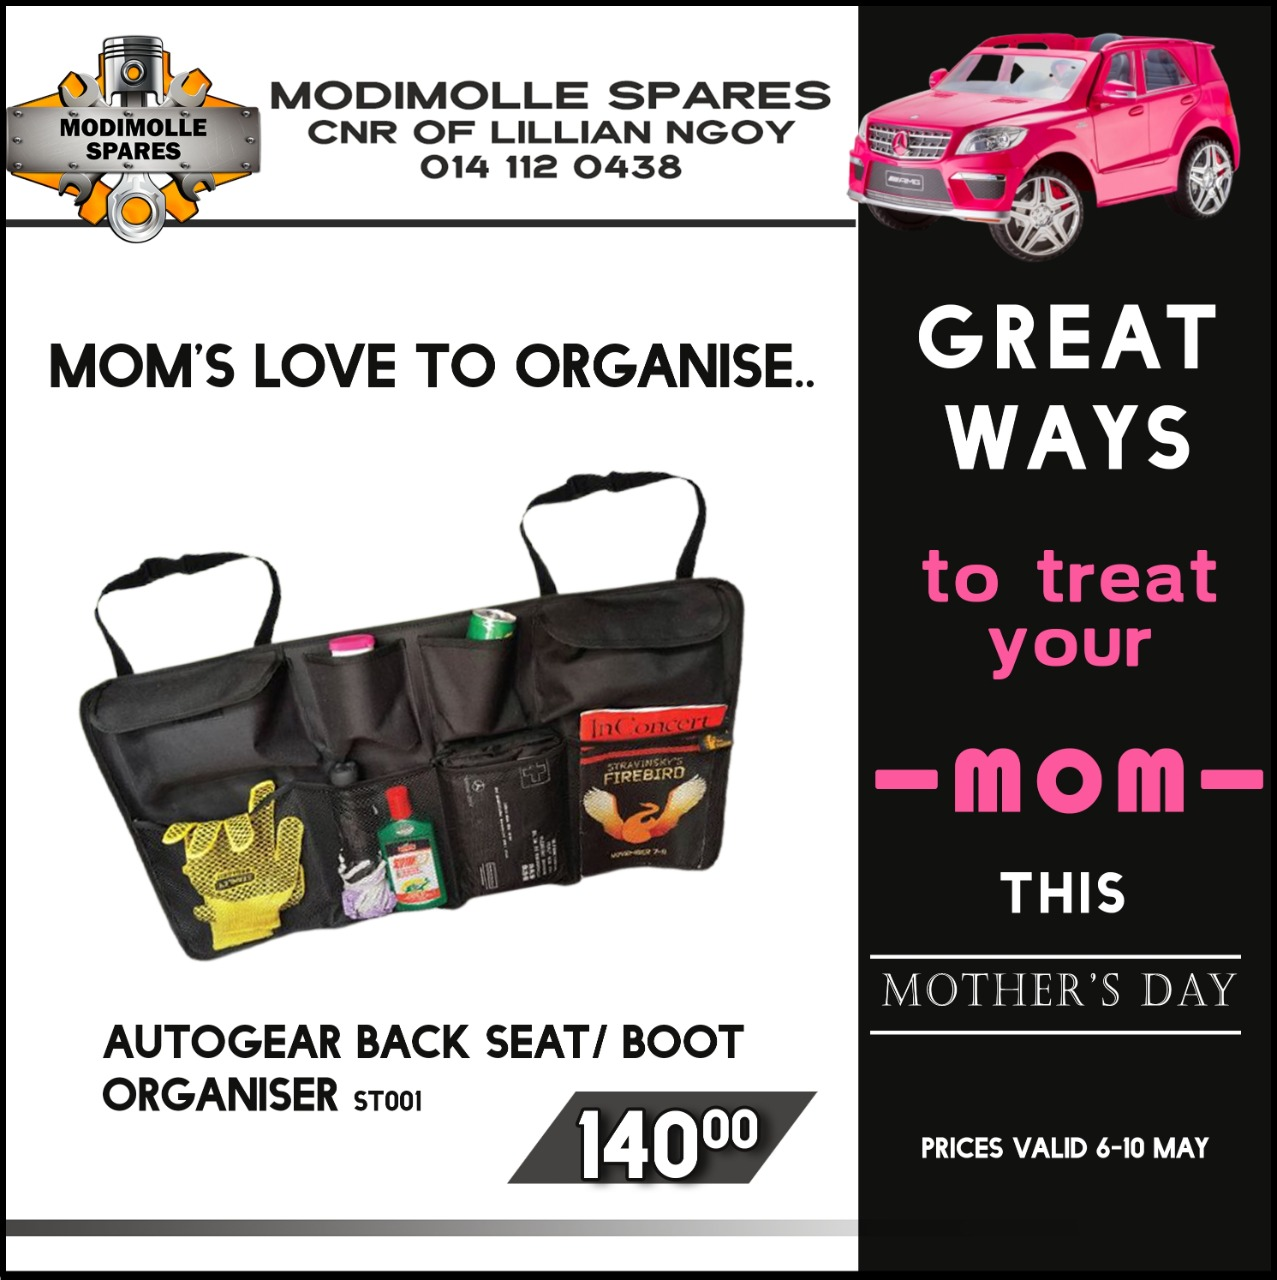 Great ways to Treat your Mom this Mother's Day at Modimolle Spares!